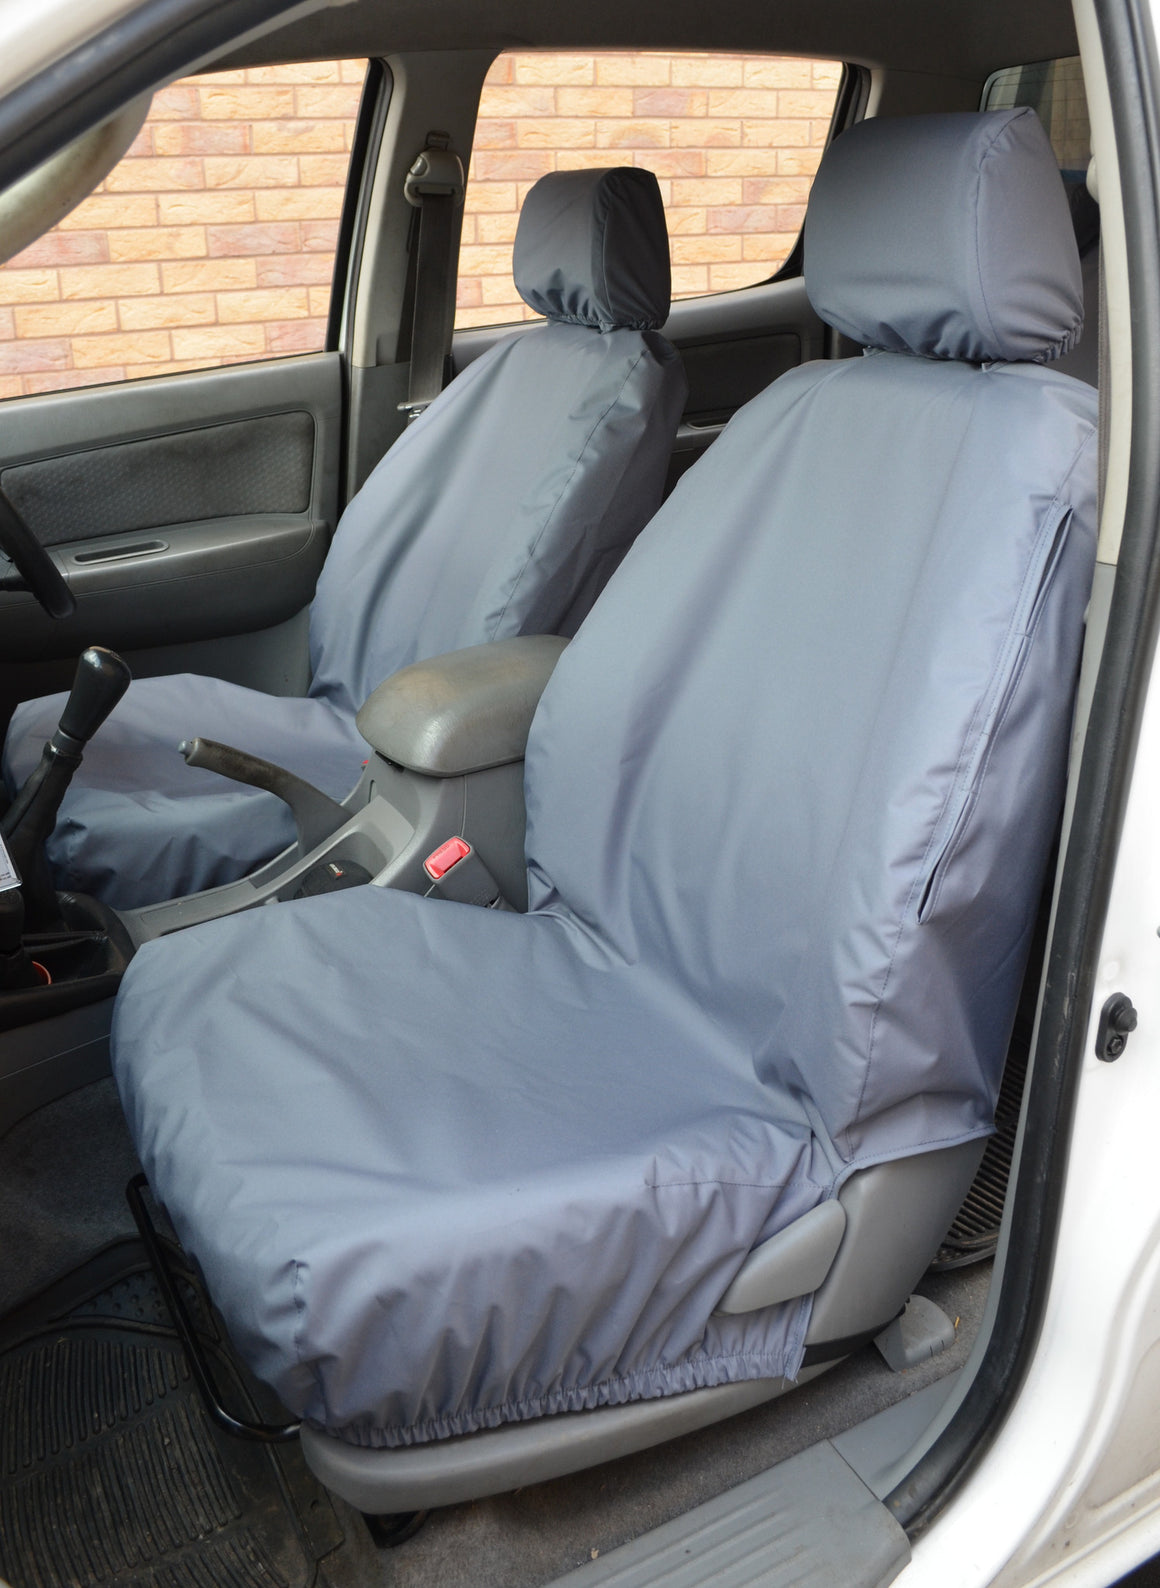 Toyota Hilux Invincible 2005 - 2016 Seat Covers Front Pair Seat Covers / Grey Turtle Covers Ltd